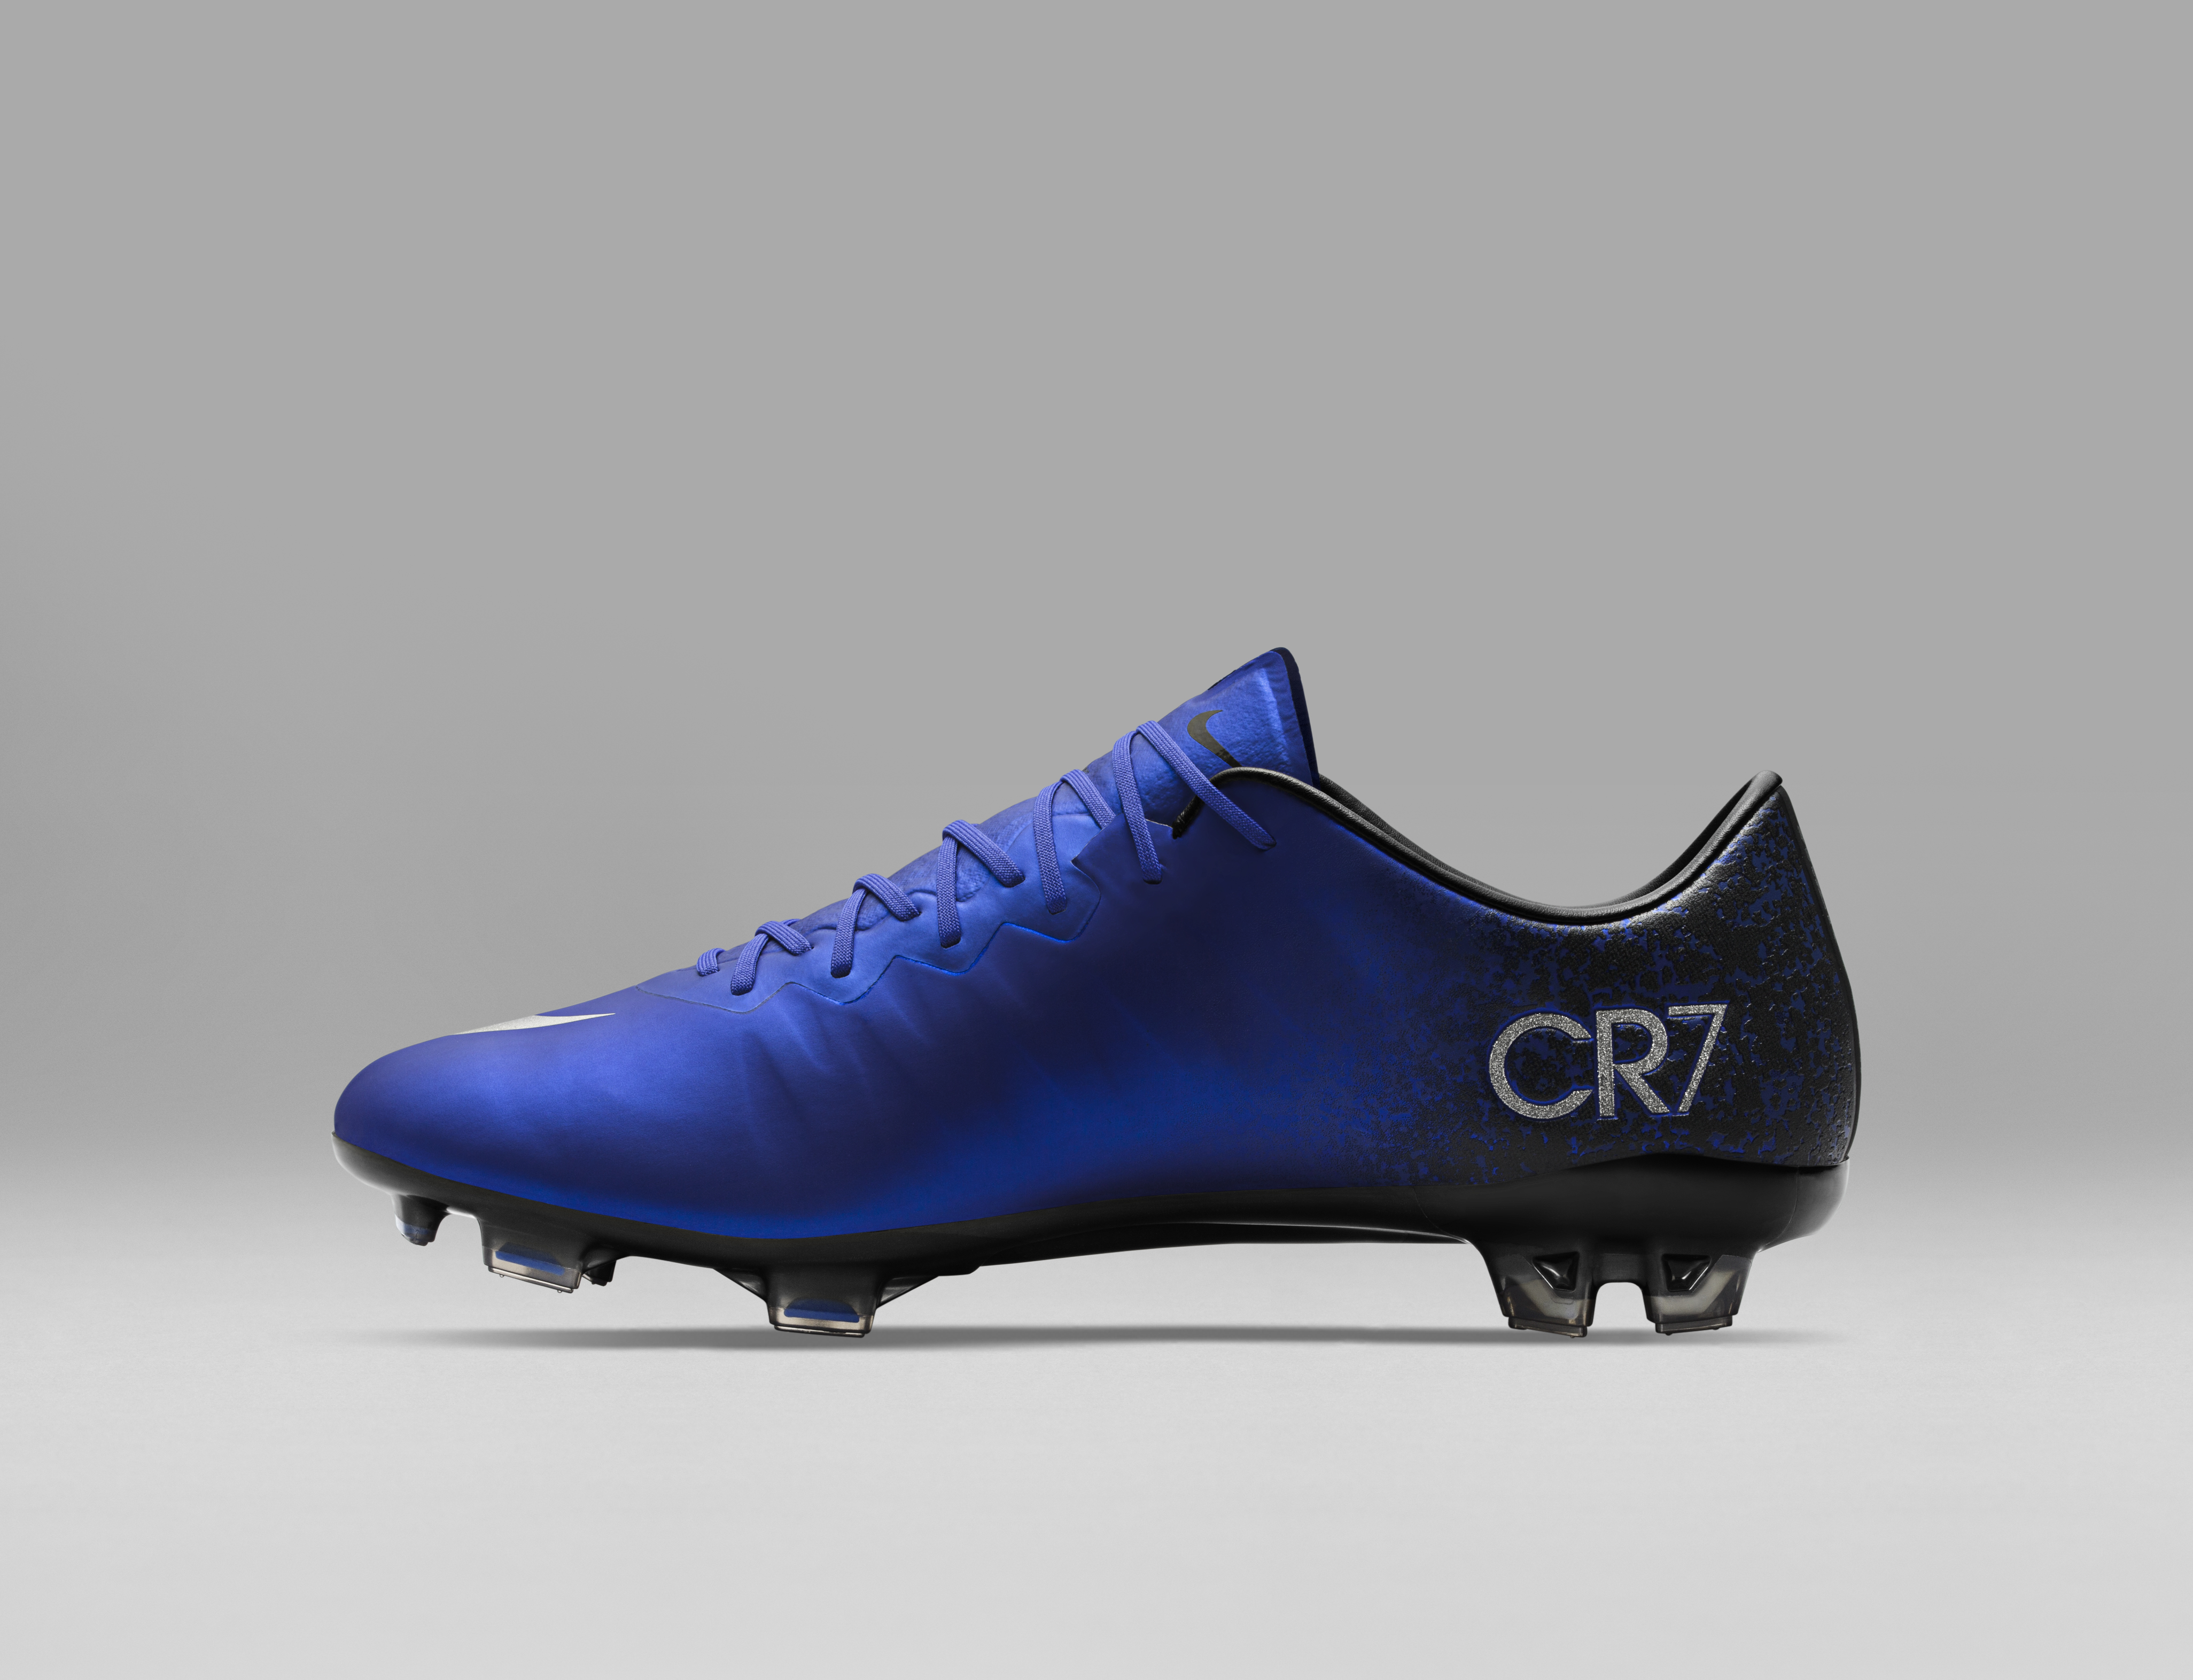 nike shoes cr7 news pictures background 859771